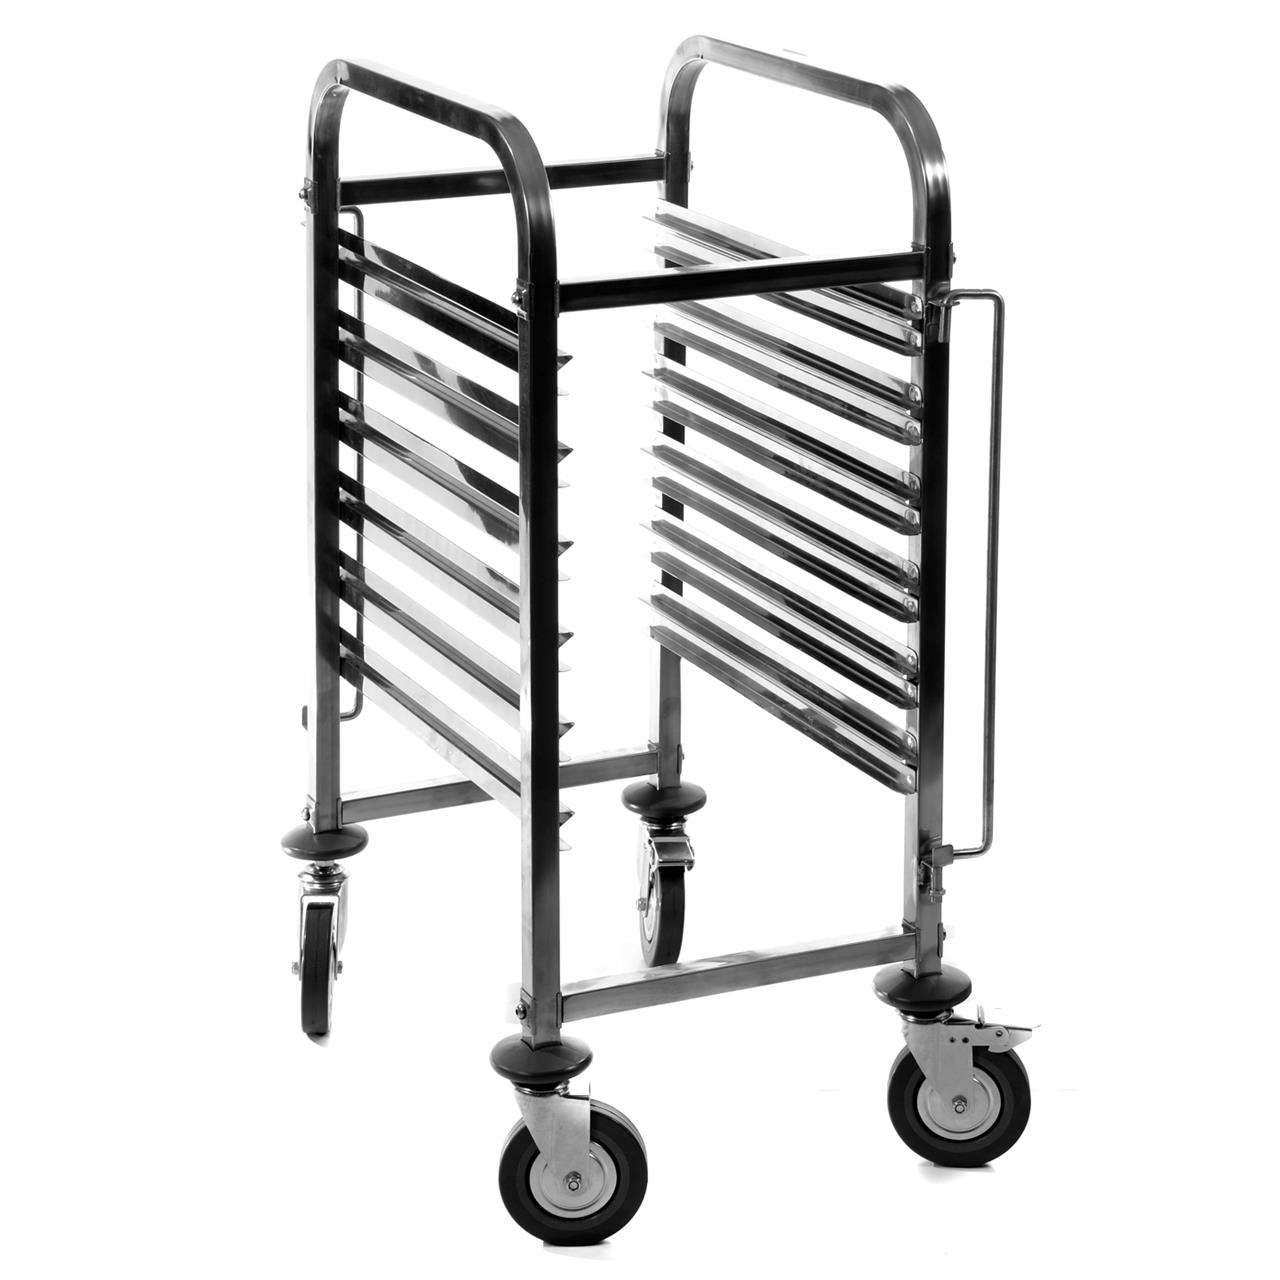 KH Gastronorm Stainless Steel Pan Carrier Single 6 Tier